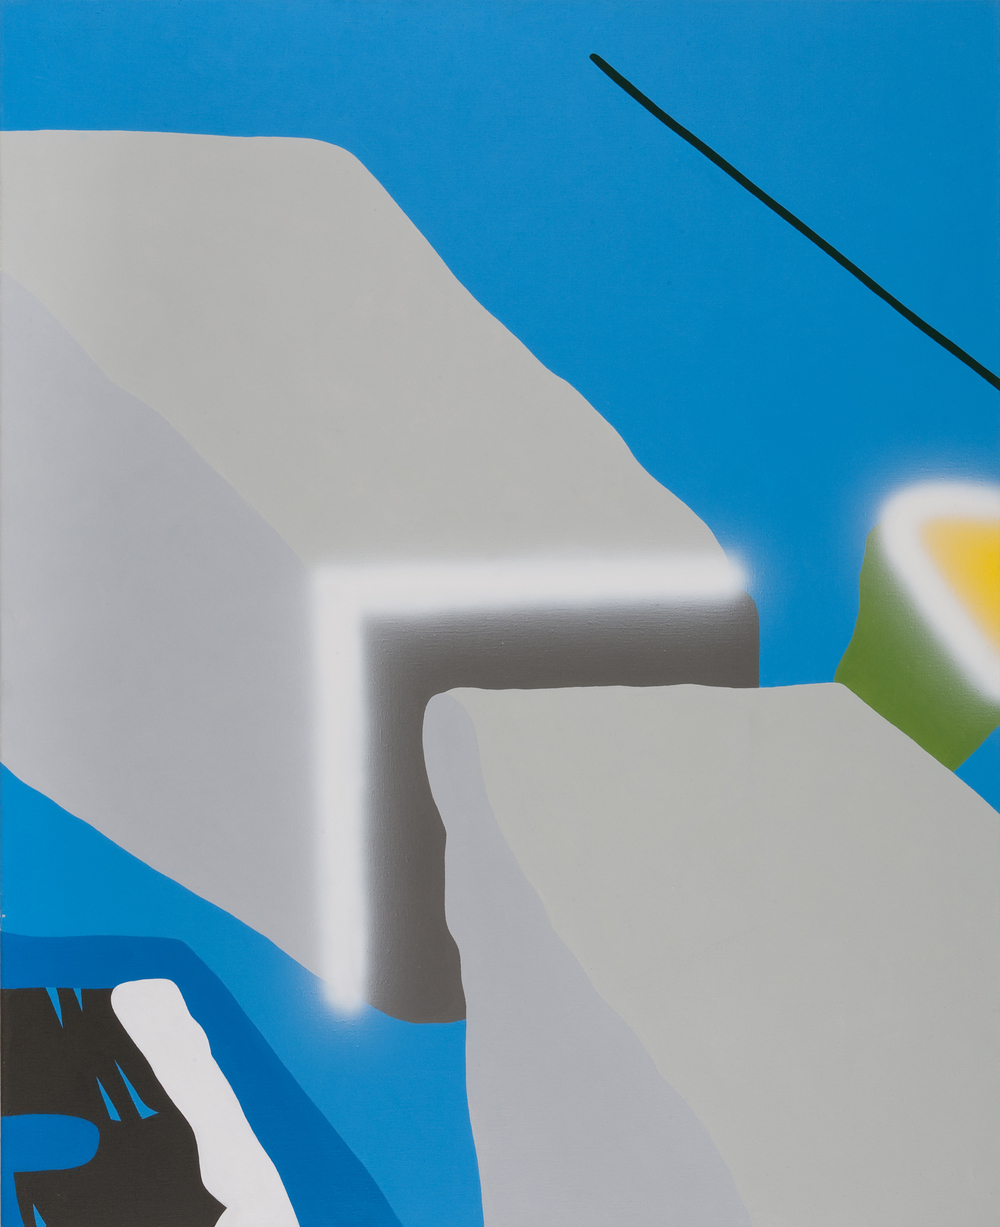 Architecture VI. 2005, acrylic on canvas, 160 x 130 cm